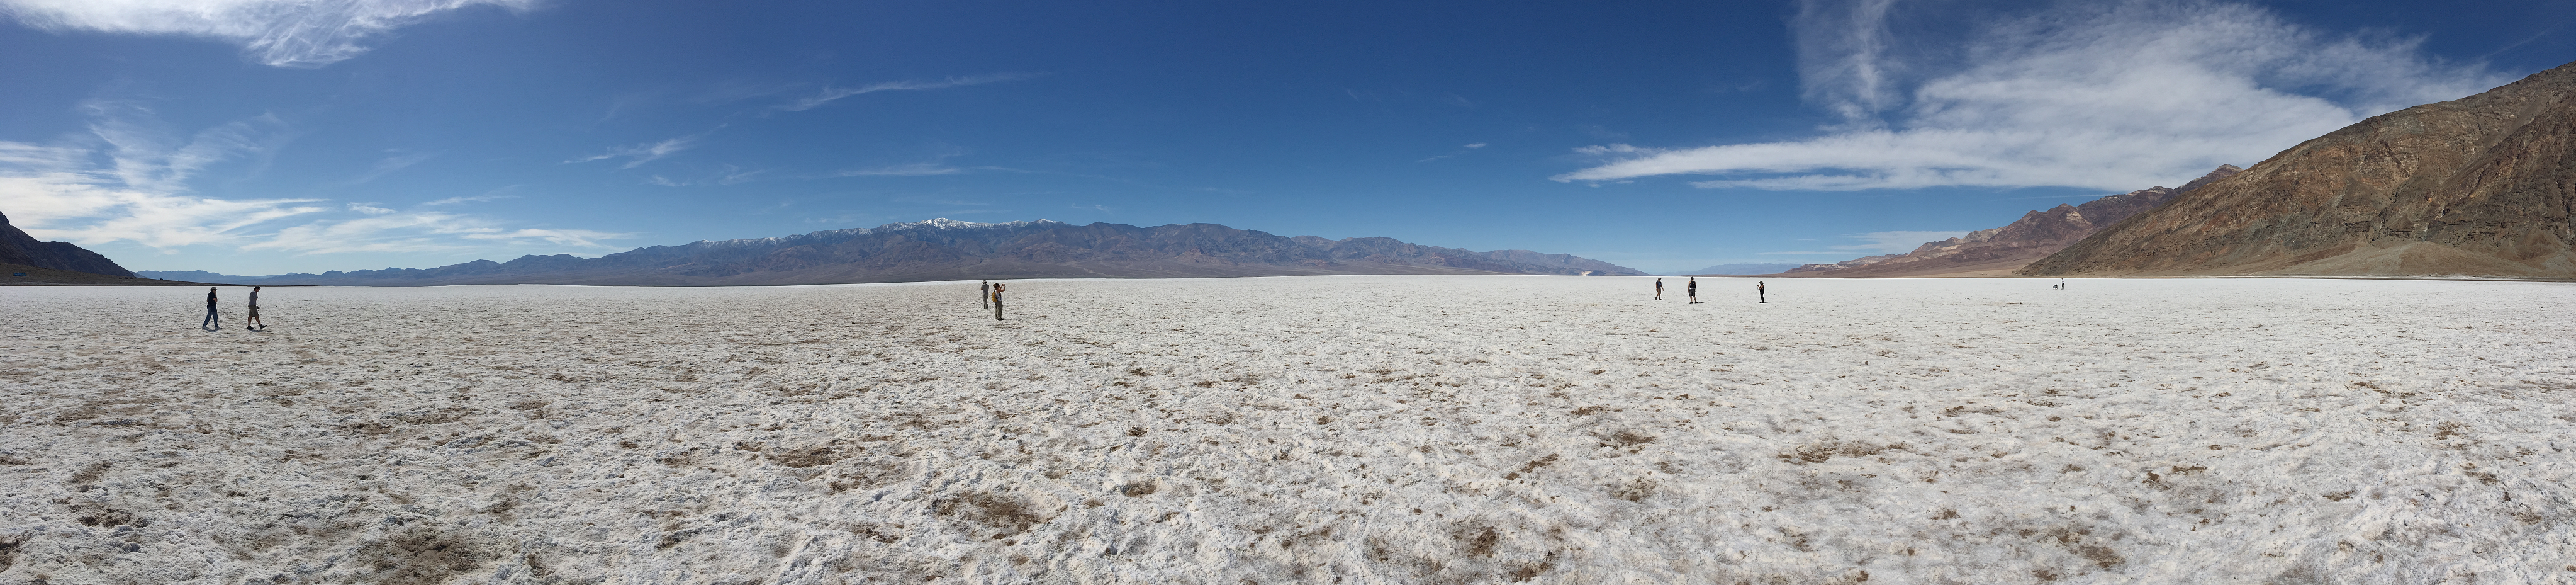 Badwater salts